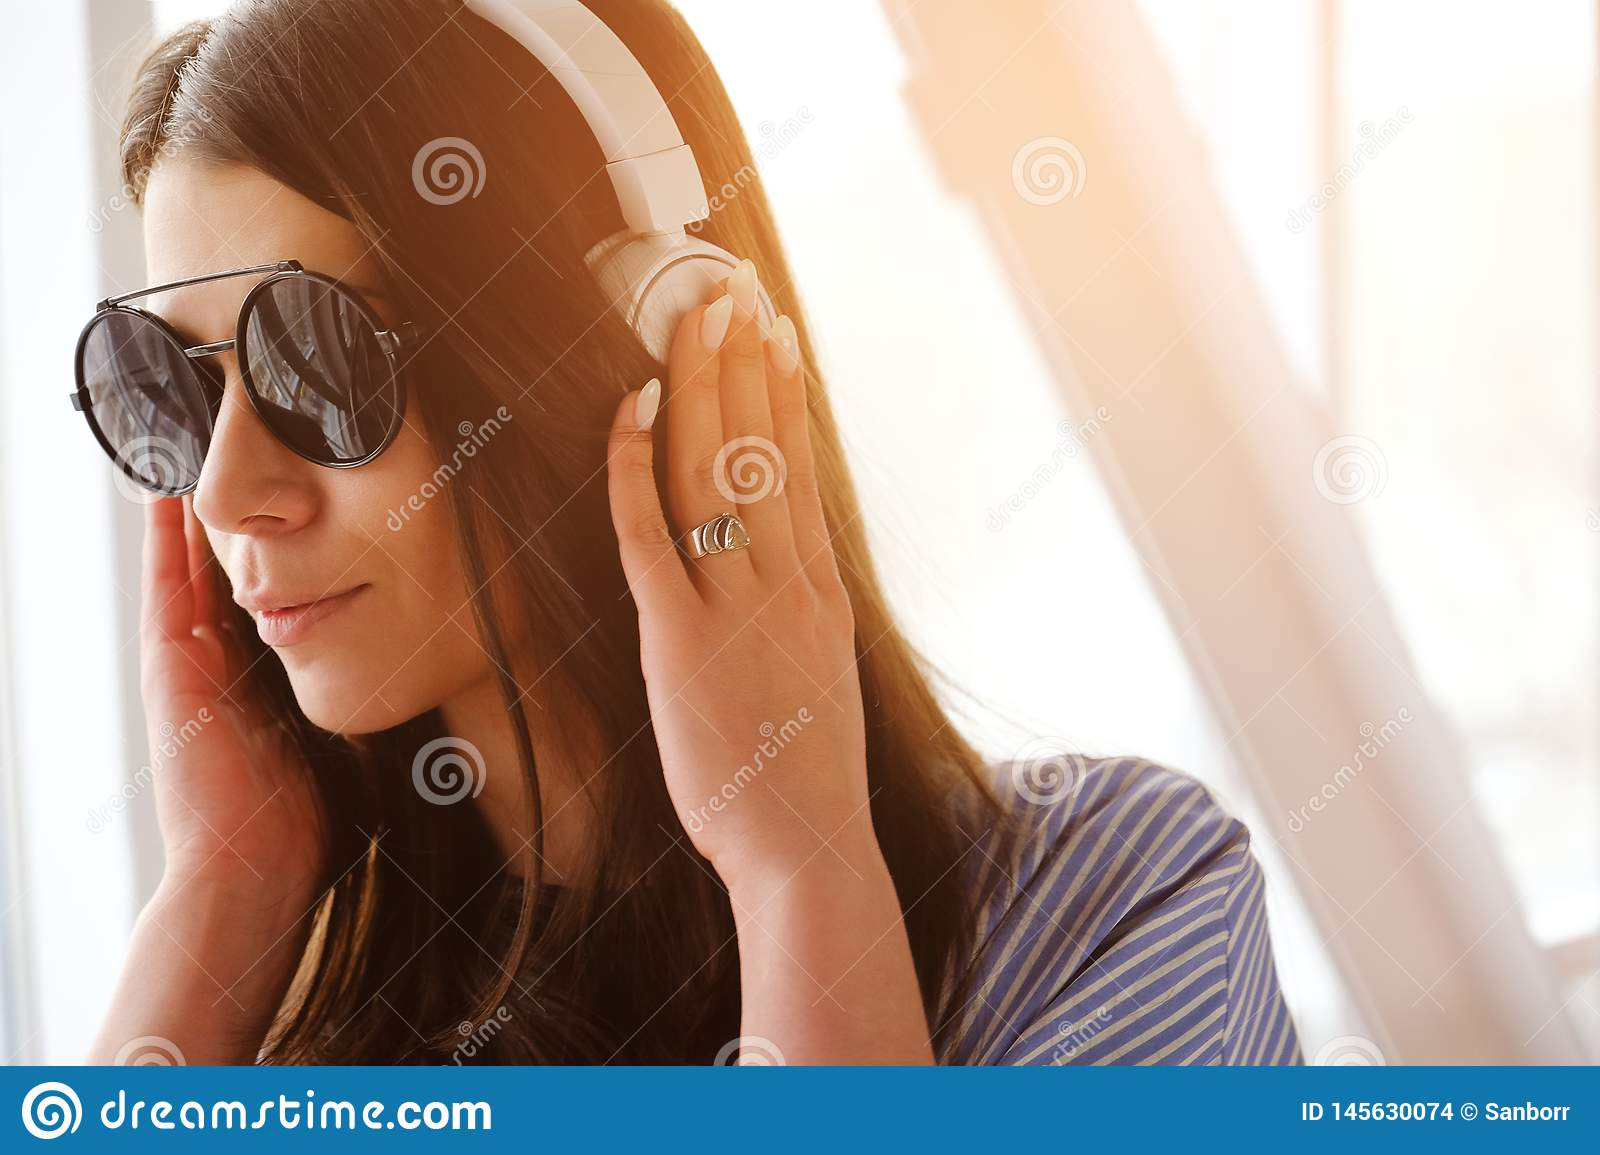 A girl with dark hair in headphones listening to music, sitting in a room, airport, office. A young woman with glasses